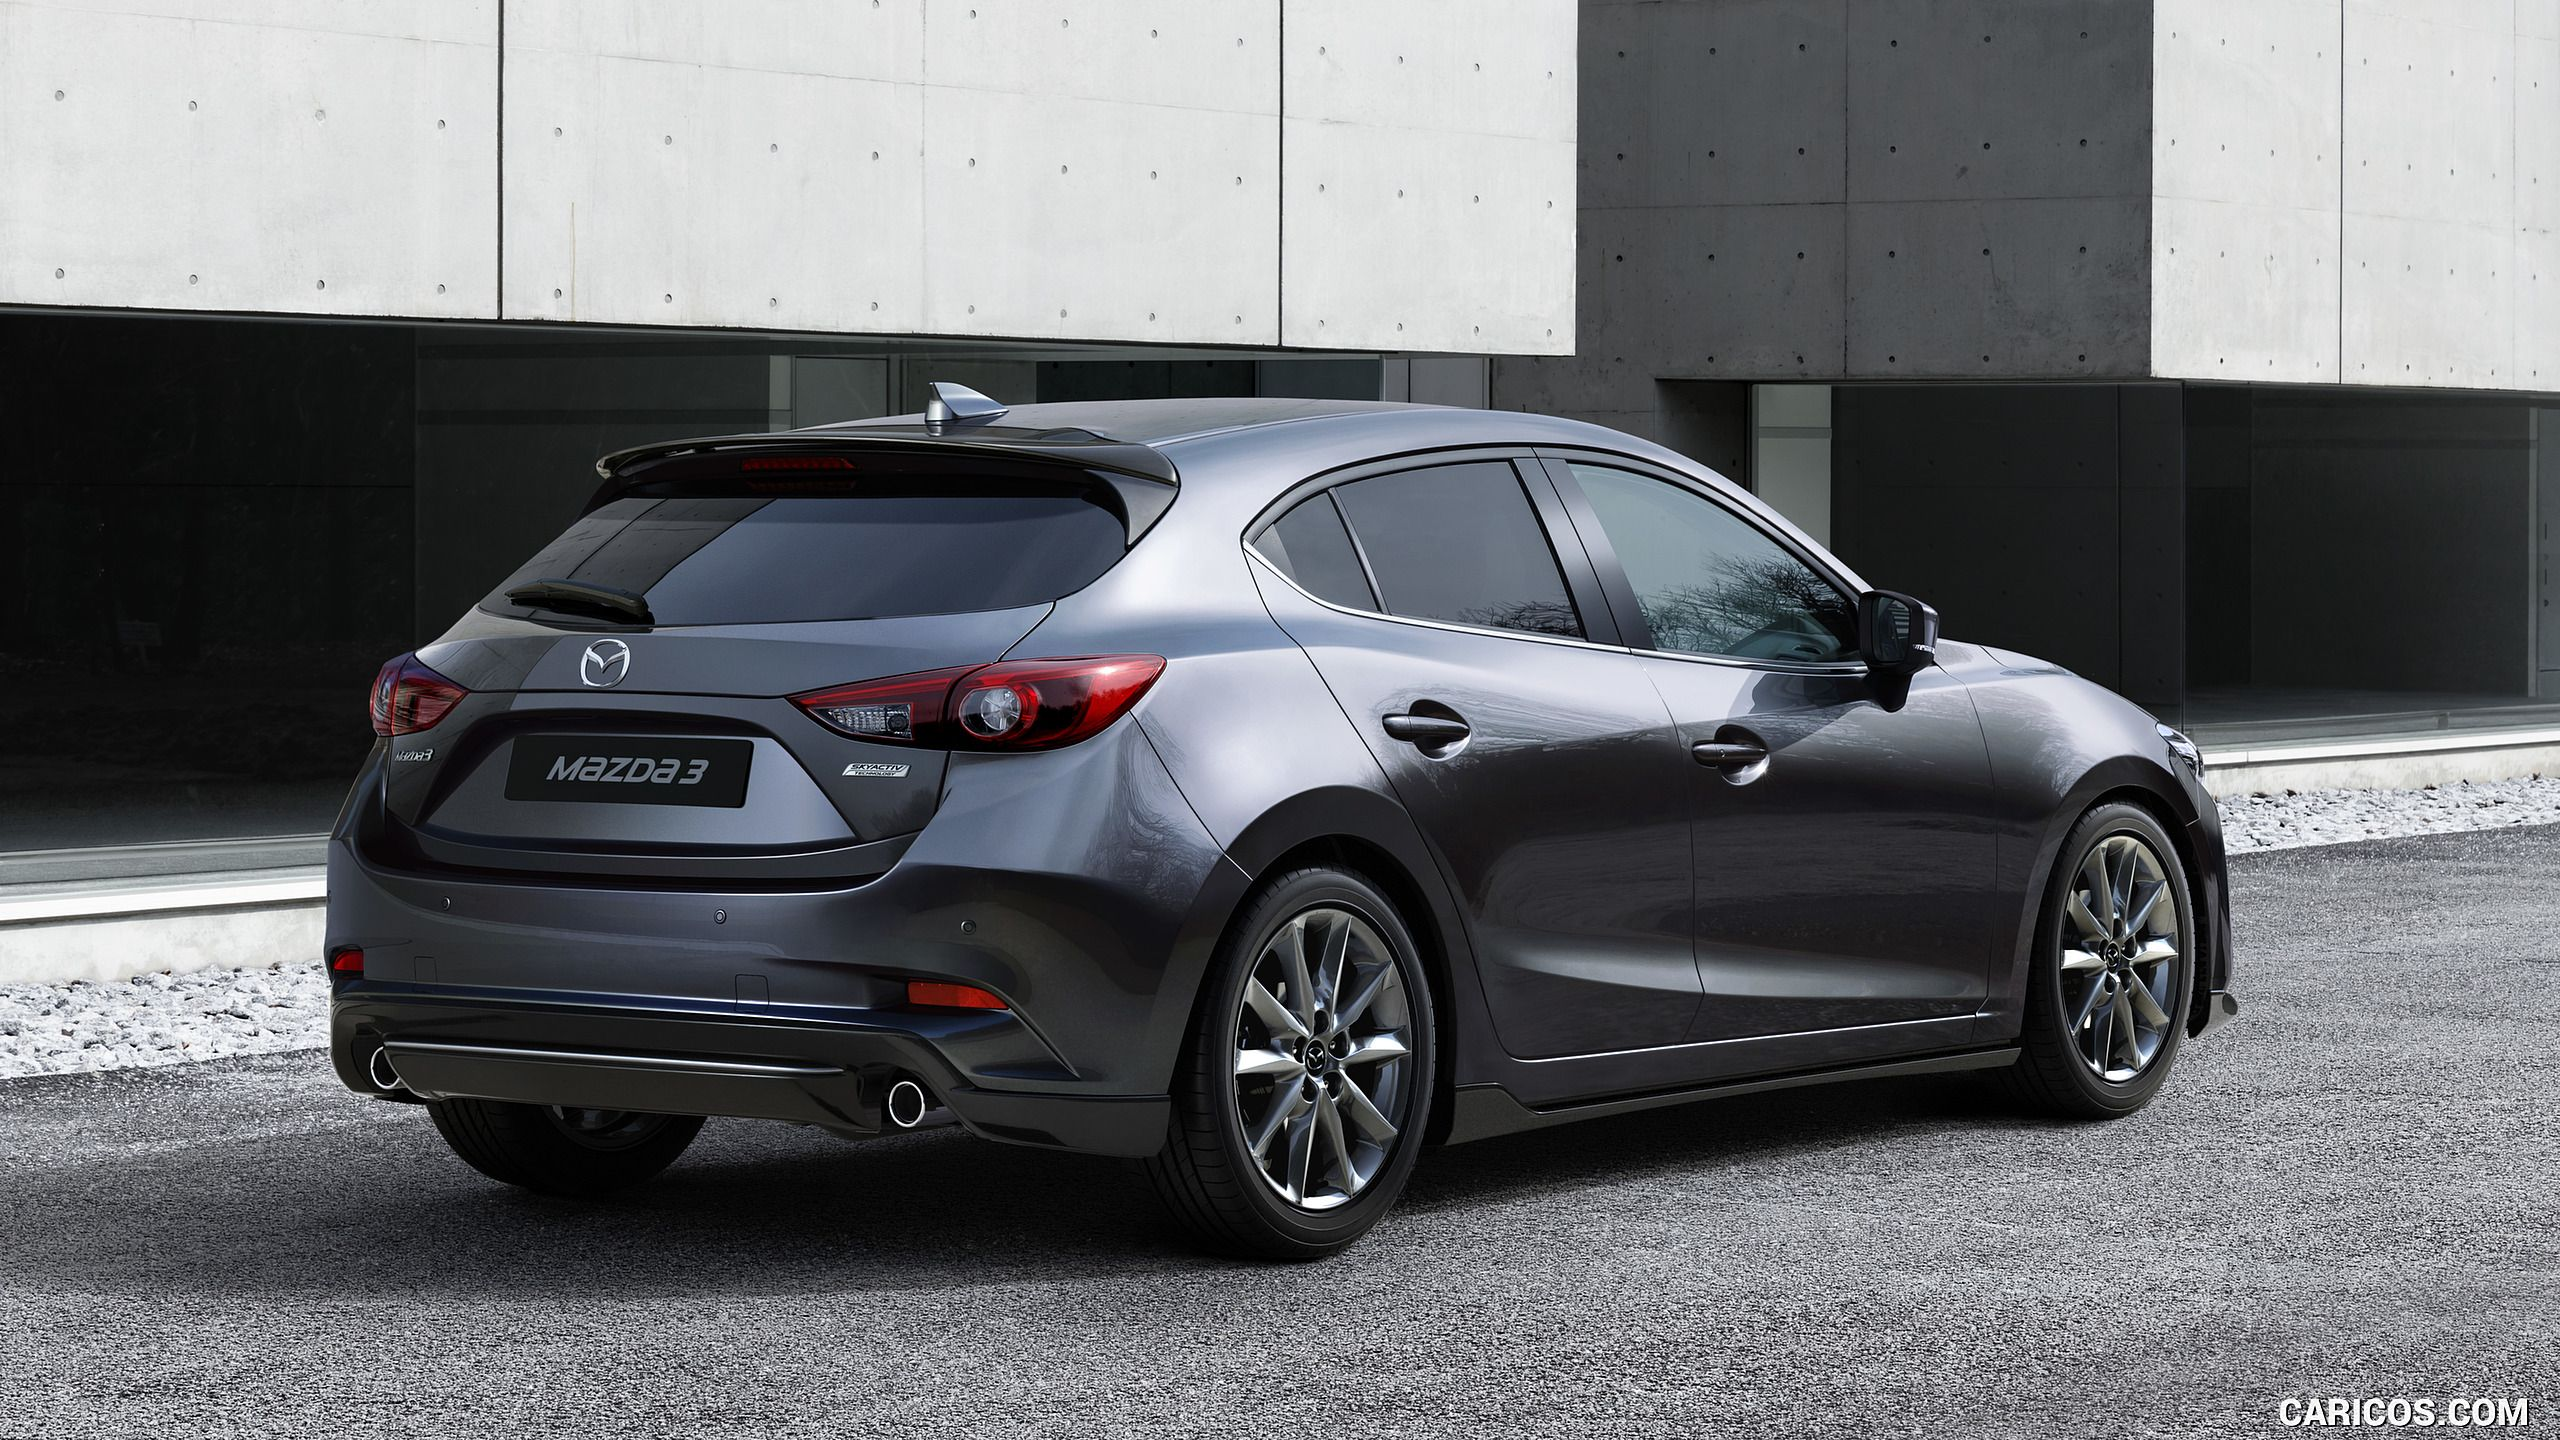 2017 Mazda 3 5 Door Hatchback Color Machine Grey Rear Three